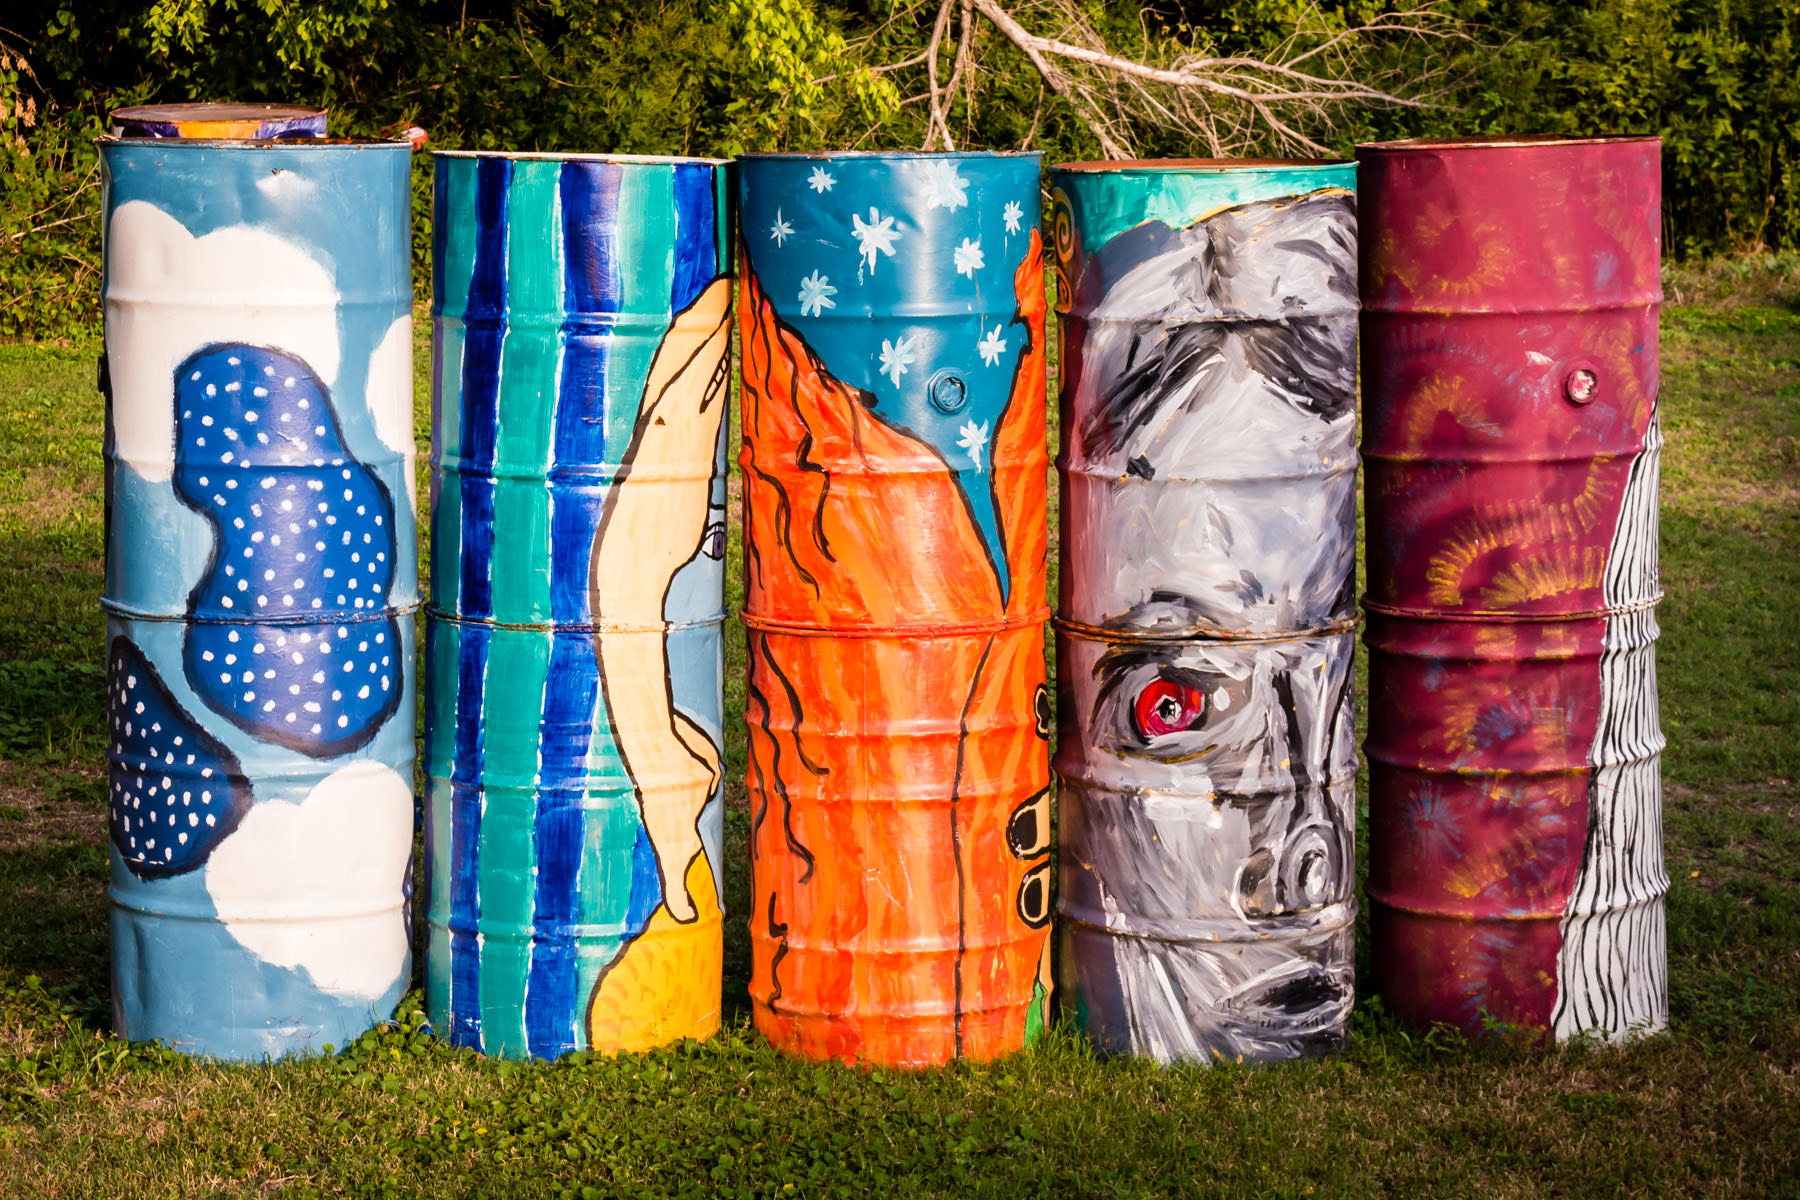 55-gallon drums welded together and painted to make artwork in a Waxahachie, Texas, park.